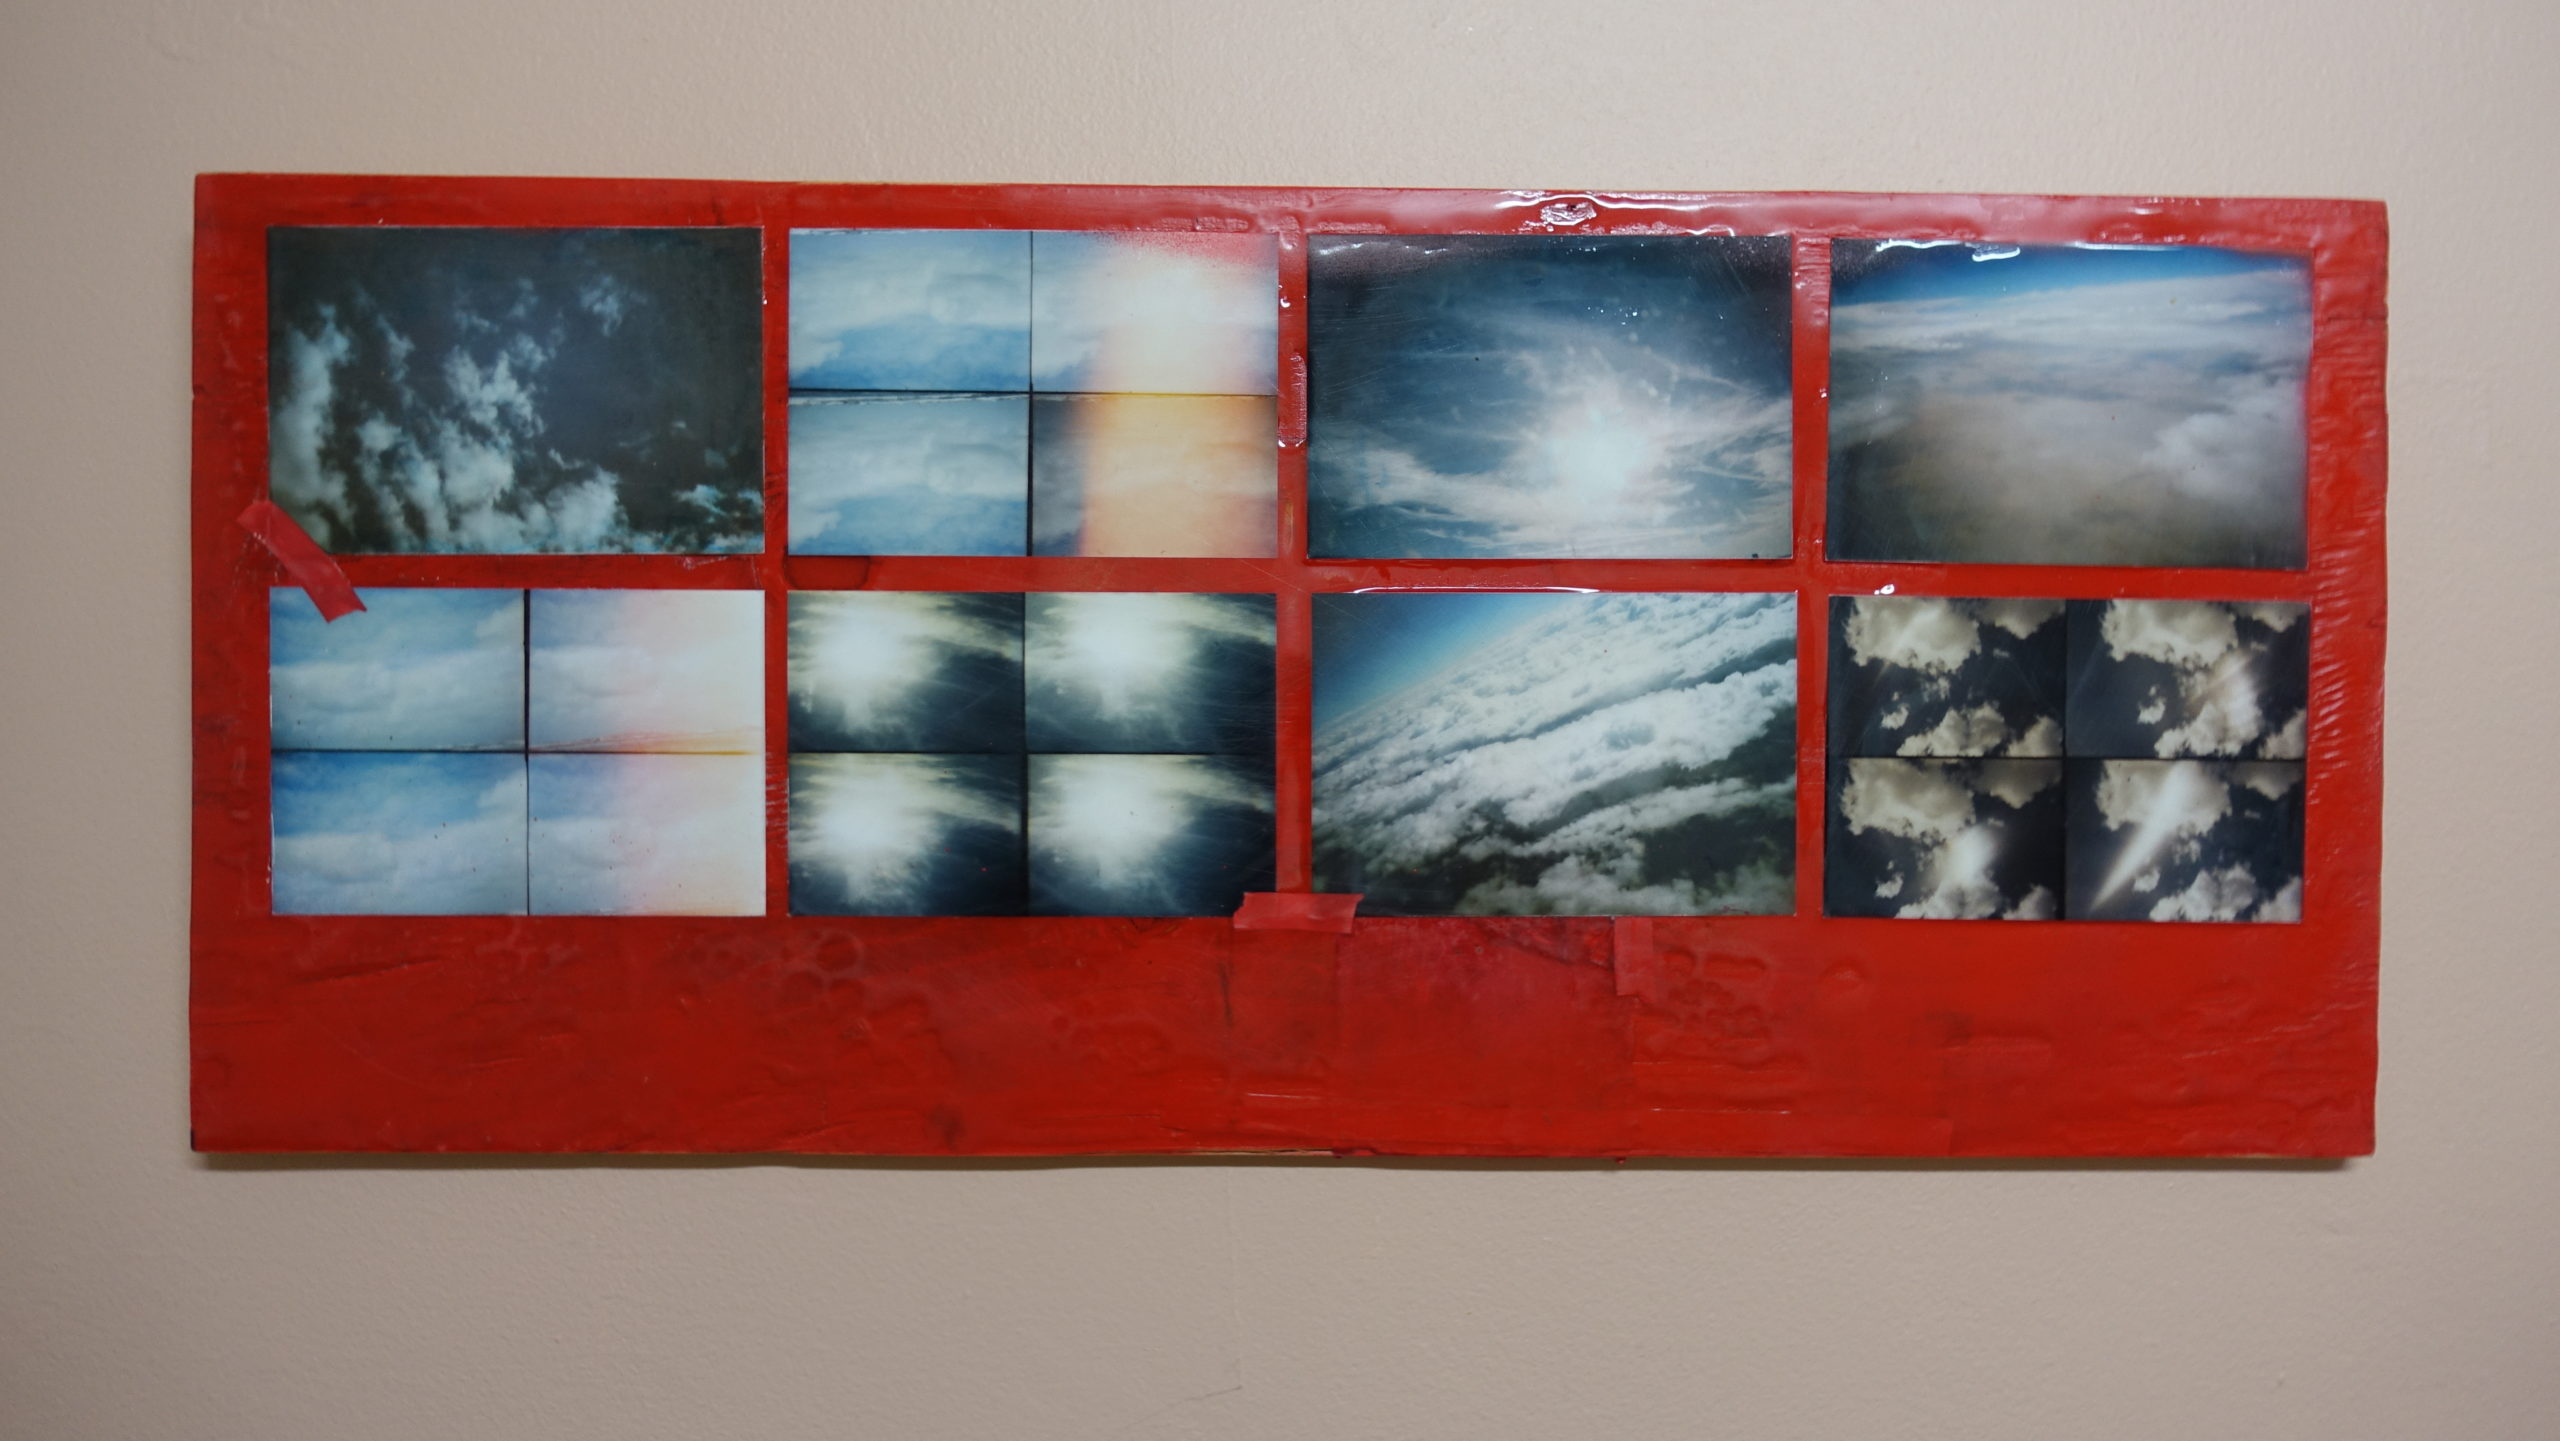 cloud#8 - 27x12 inches. 35mm toy camera photos on wood covered in casting resin.